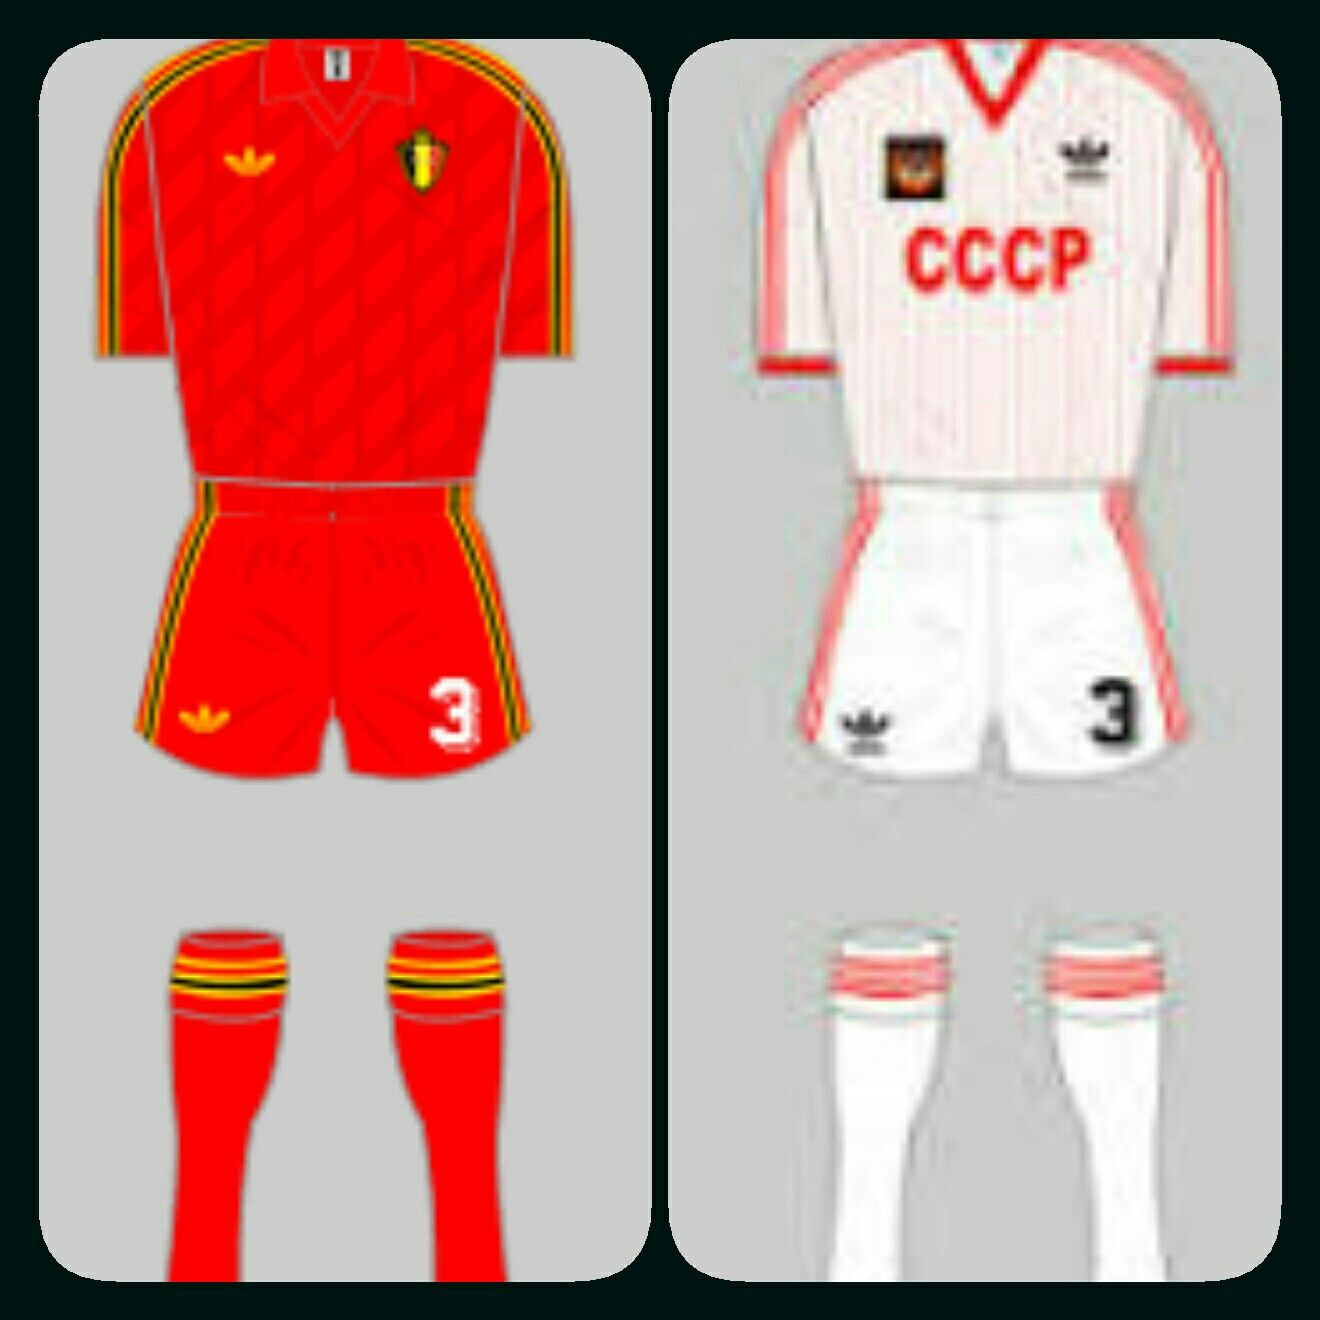 Belgium 4 USSR 3 in 1986 in Leon. Classic match played in the heat of Leon in Round 2 at the World Cup Finals.